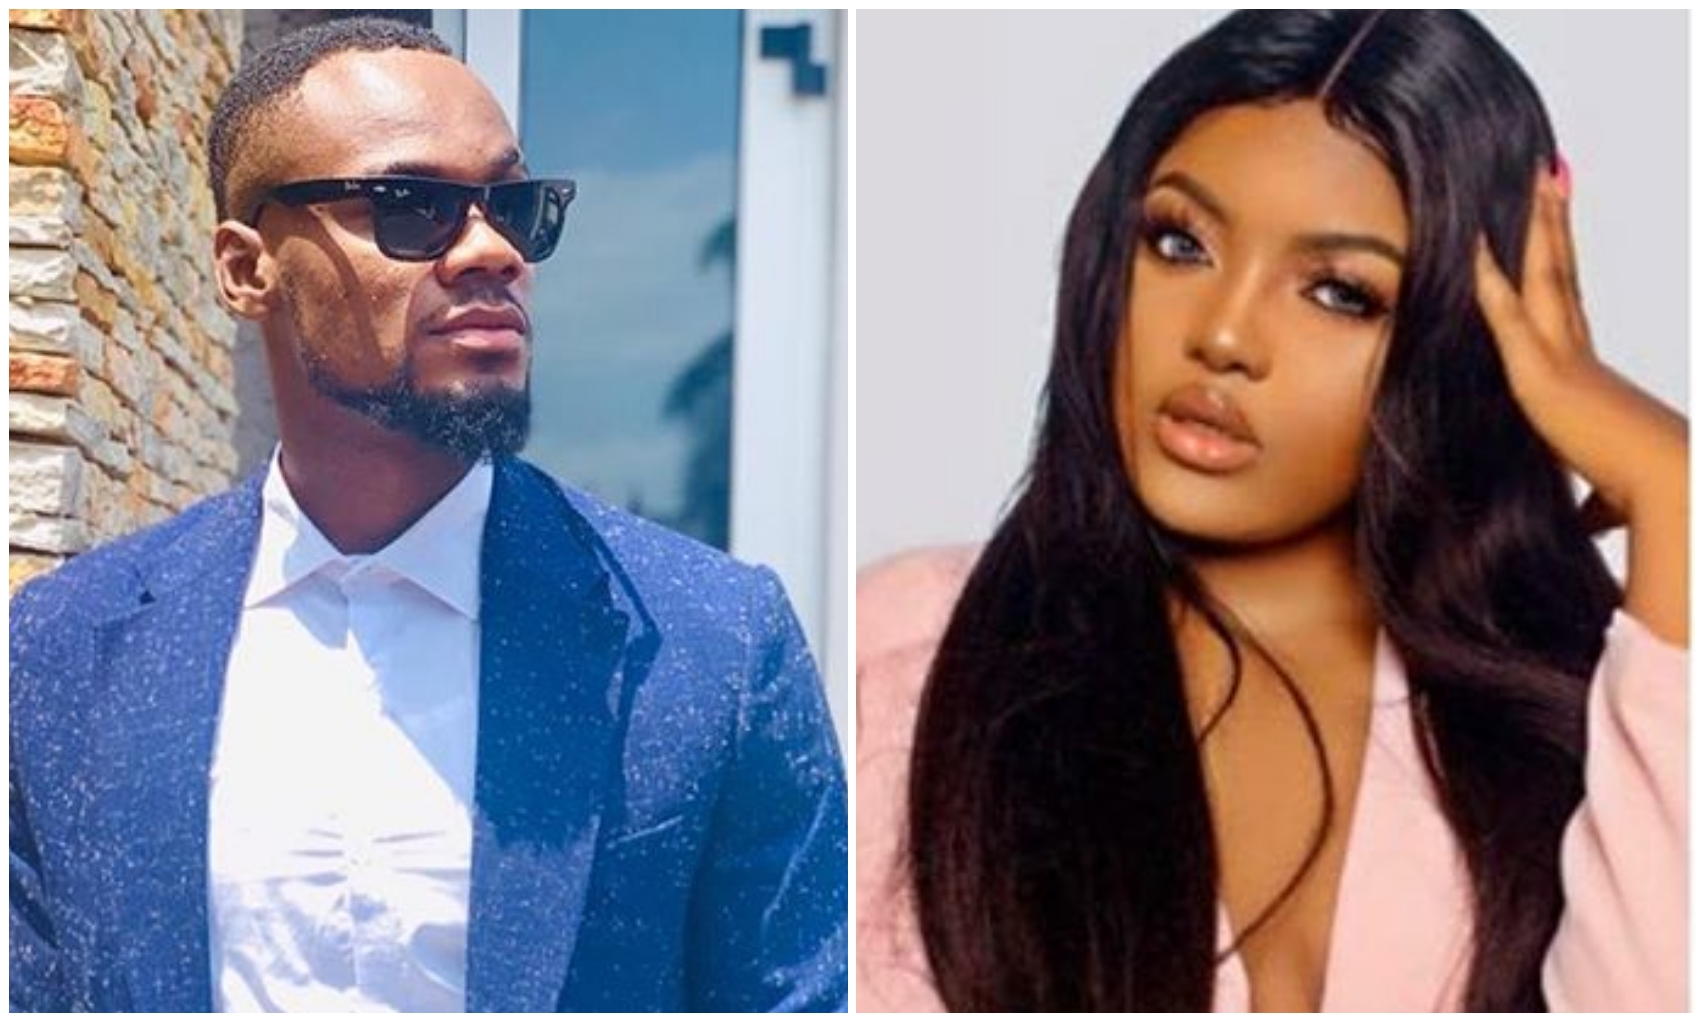 #BBNaija: Lady narrates how Prince paid her hotel bills and never asked her out